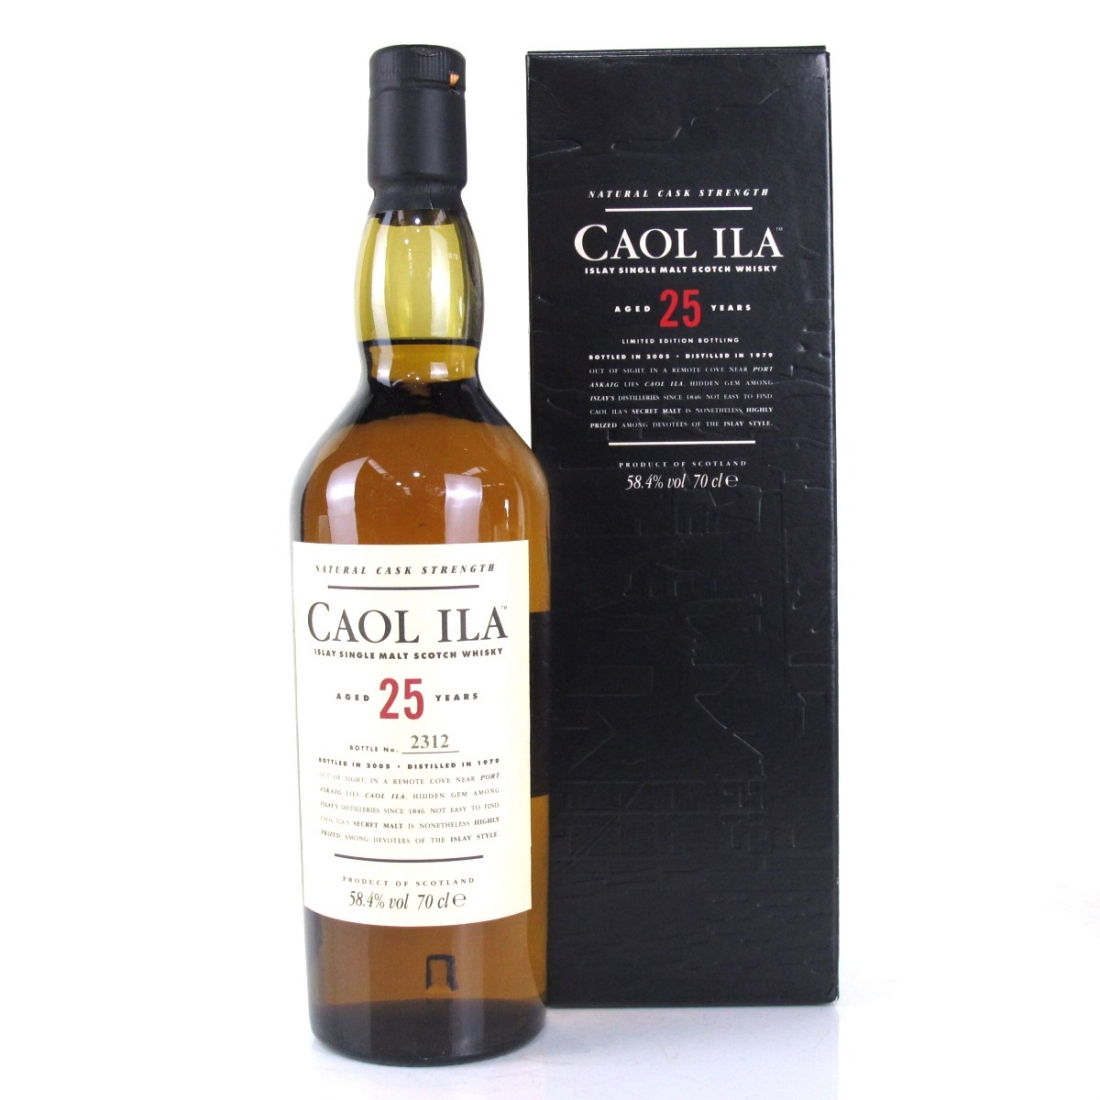 Caol Ila 1979 Cask Strength 25 Year Old 2005 Release